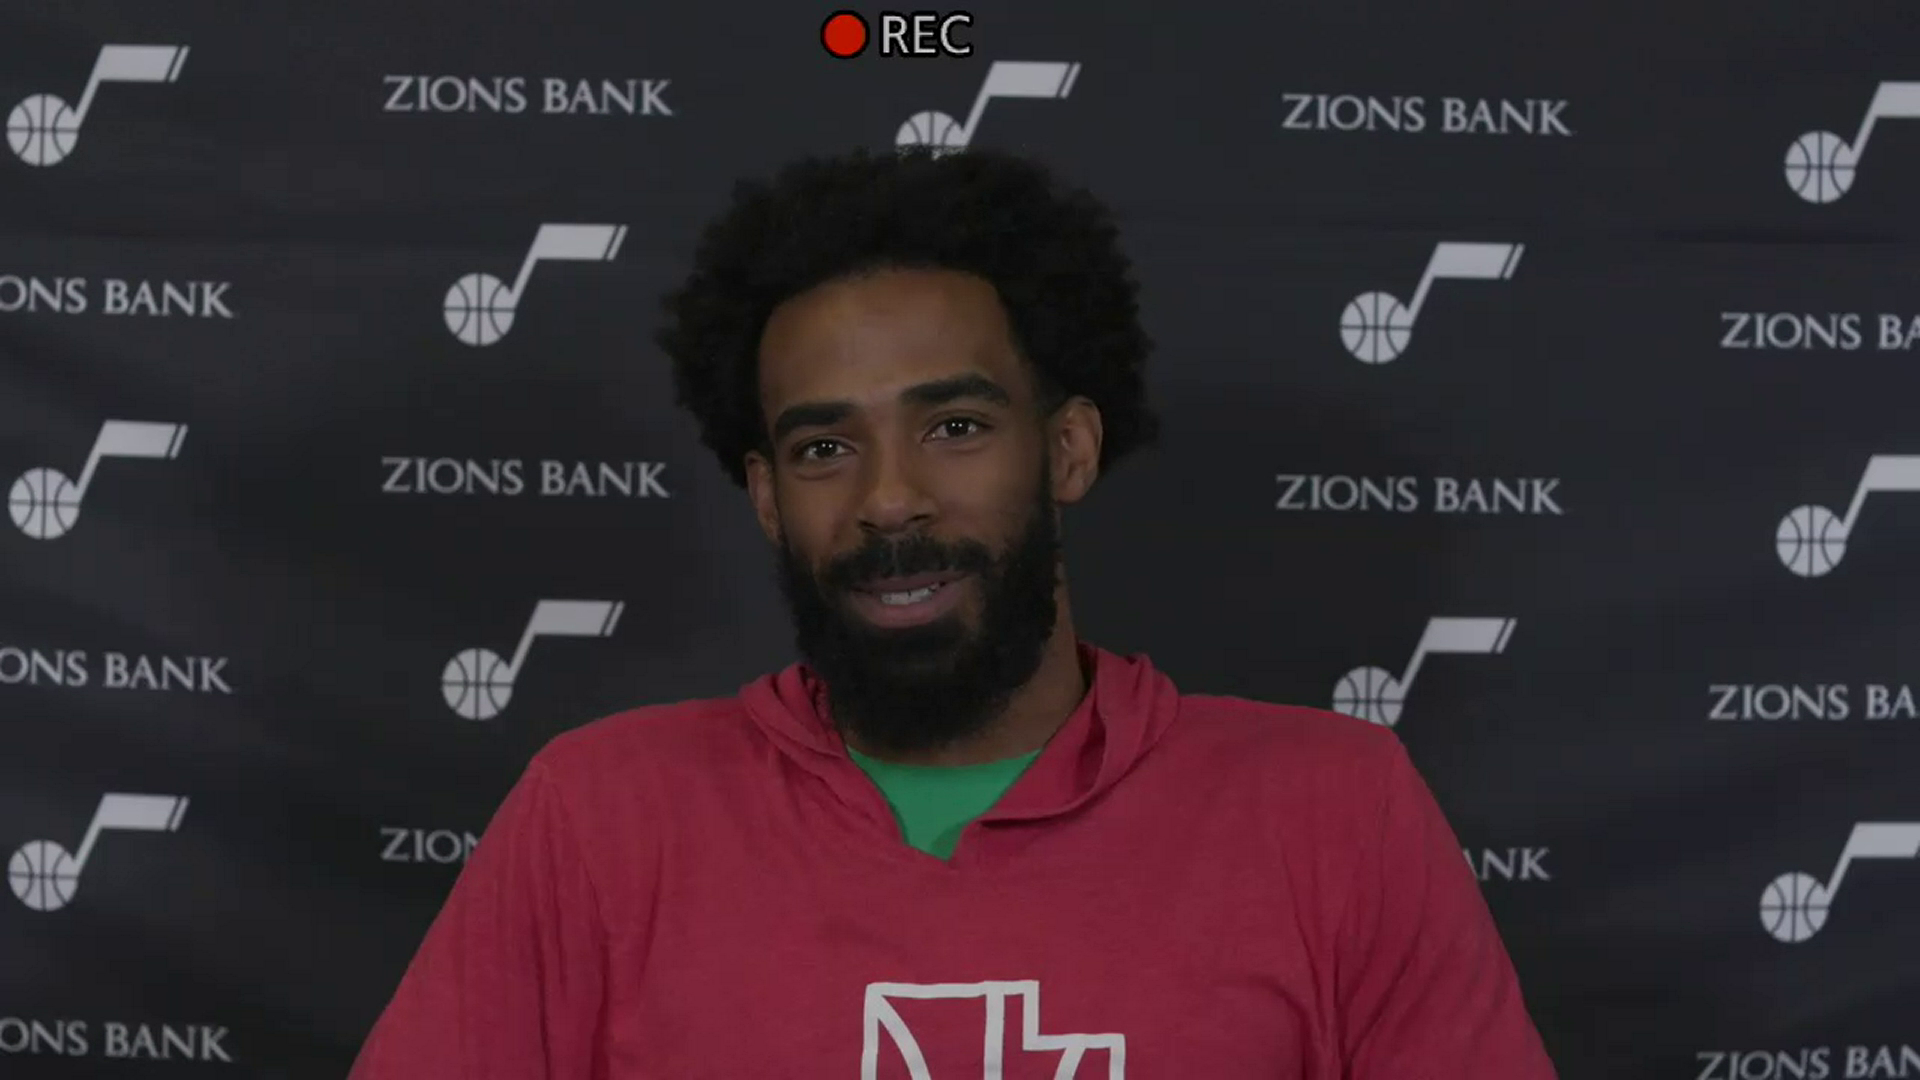 Practice 5.22—Mike Conley talks about facing his former team in the playoffs